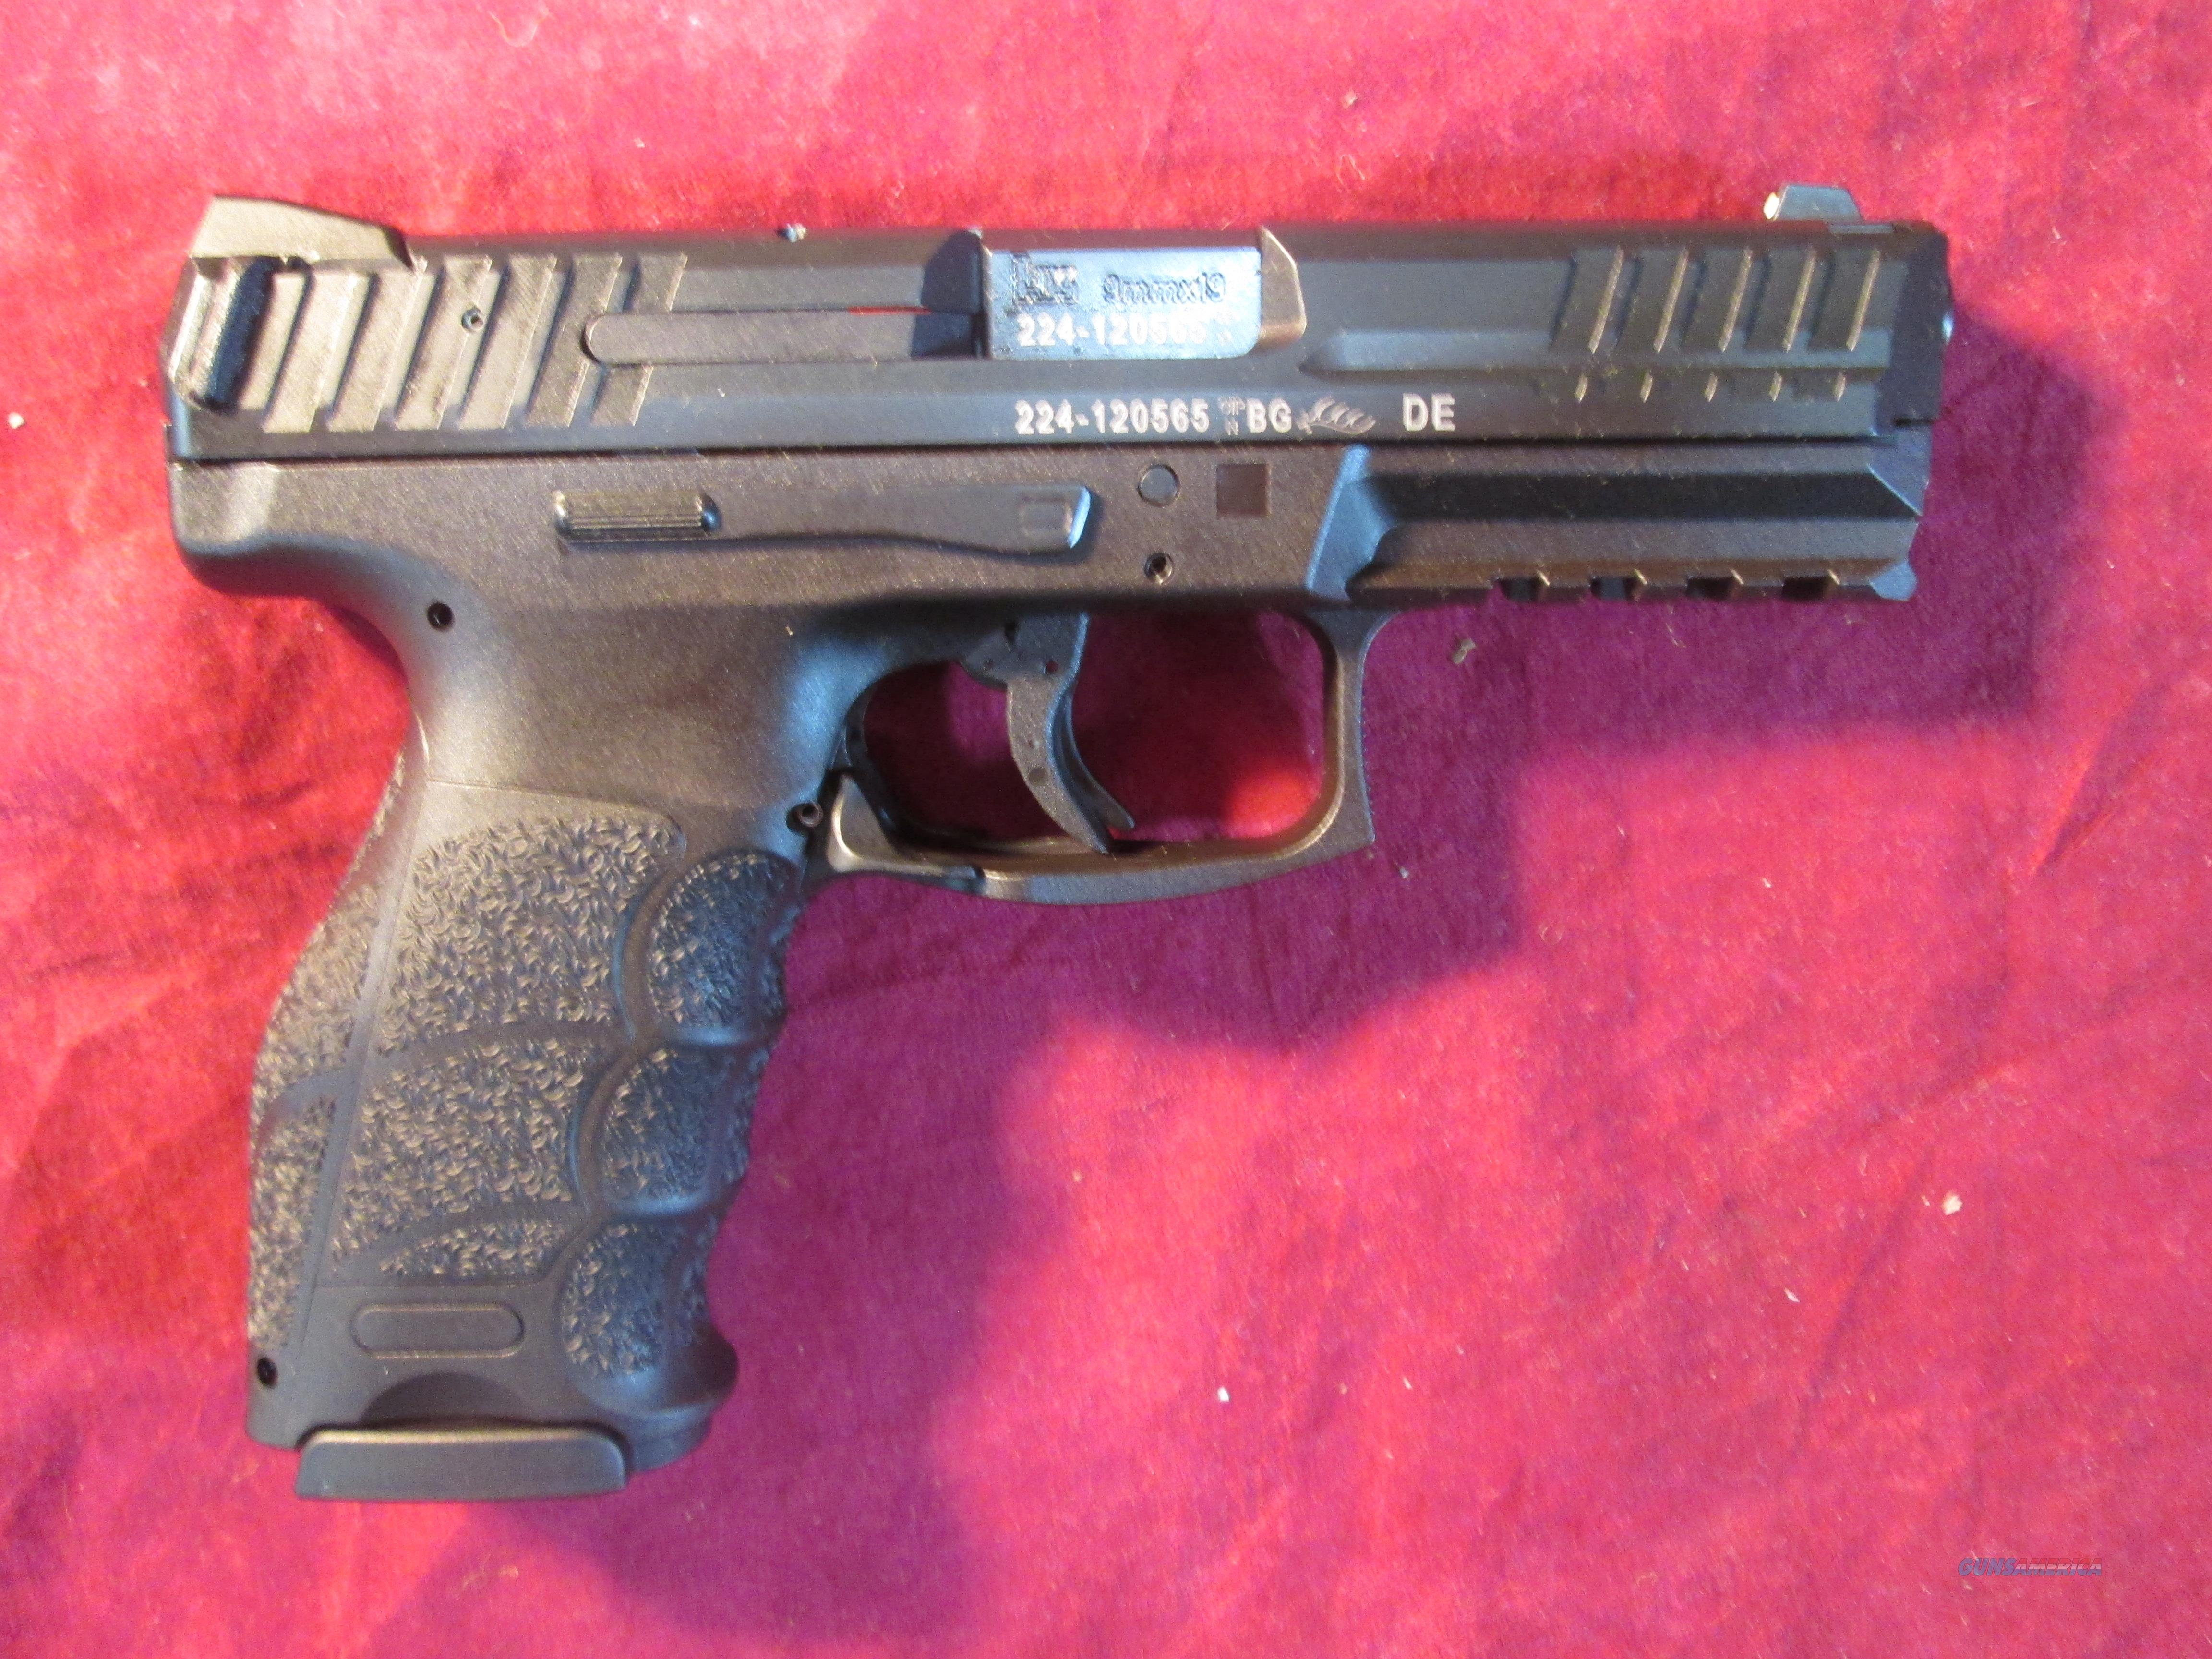 HK VP9 9MM-V1 STRIKER FIRED HIGH CAPACITY NEW (M700009-A5)  Guns > Pistols > Heckler & Koch Pistols > Polymer Frame